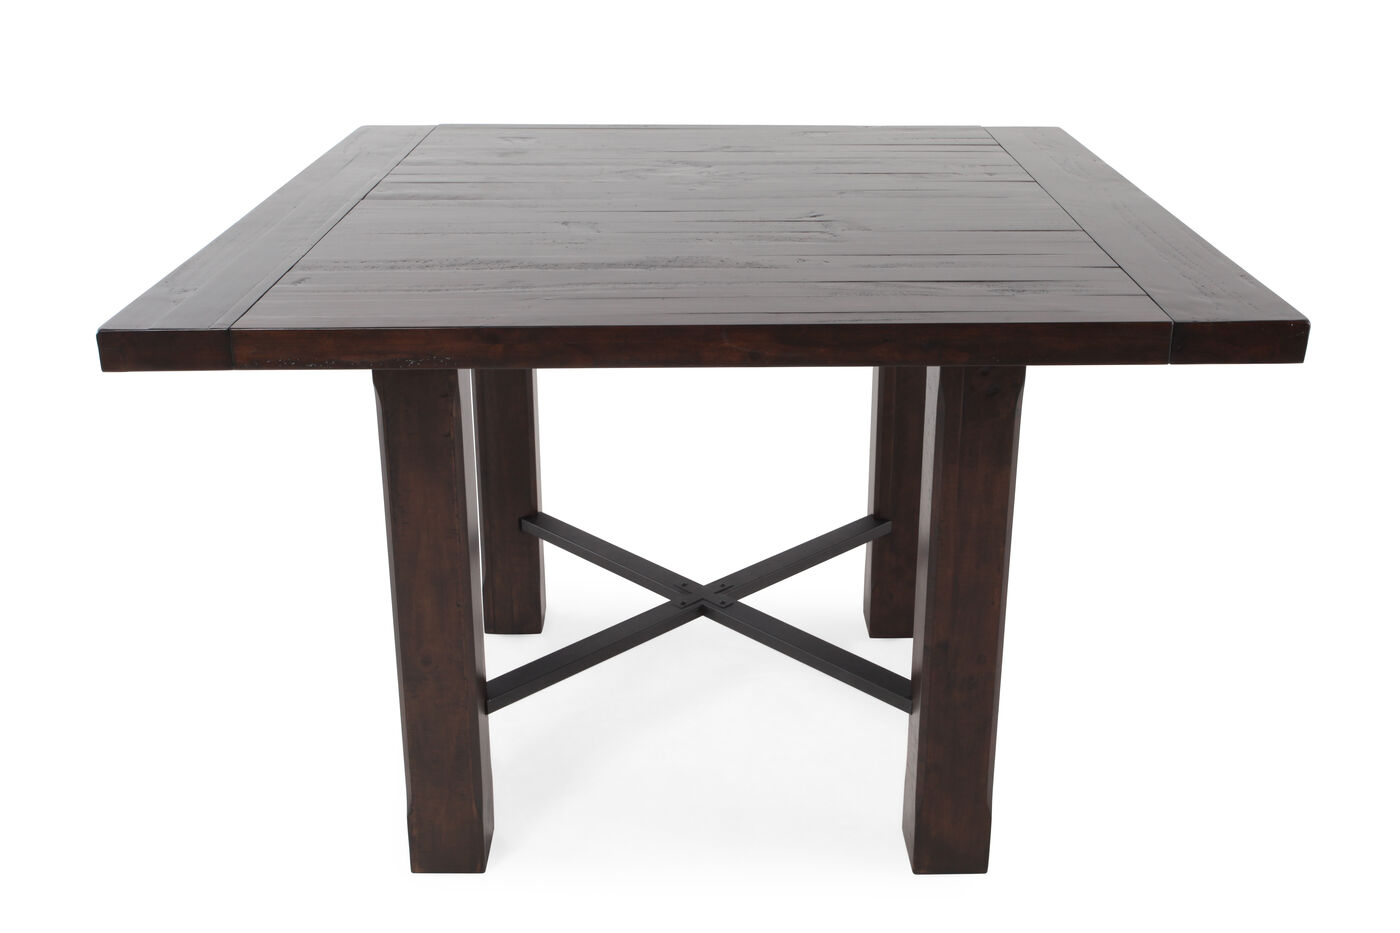 transitional 54 square counter table in rustic pine mathis brothers furniture. Black Bedroom Furniture Sets. Home Design Ideas